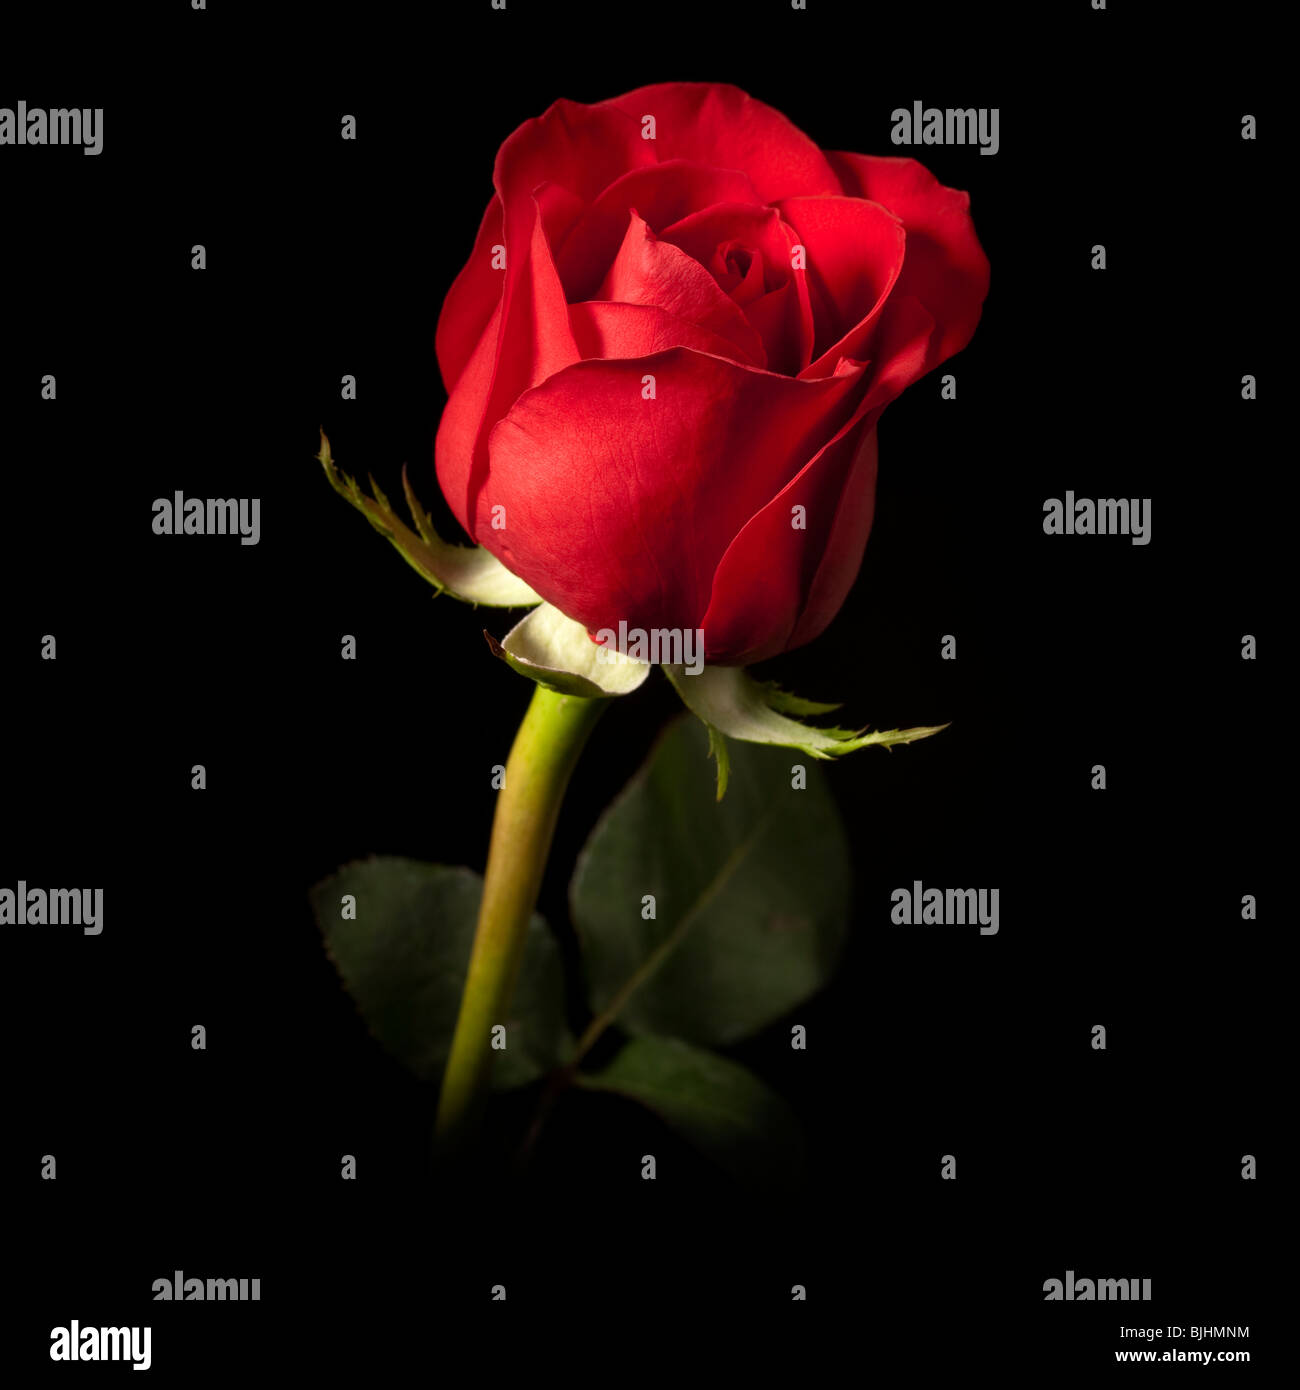 Images of single red rose black background